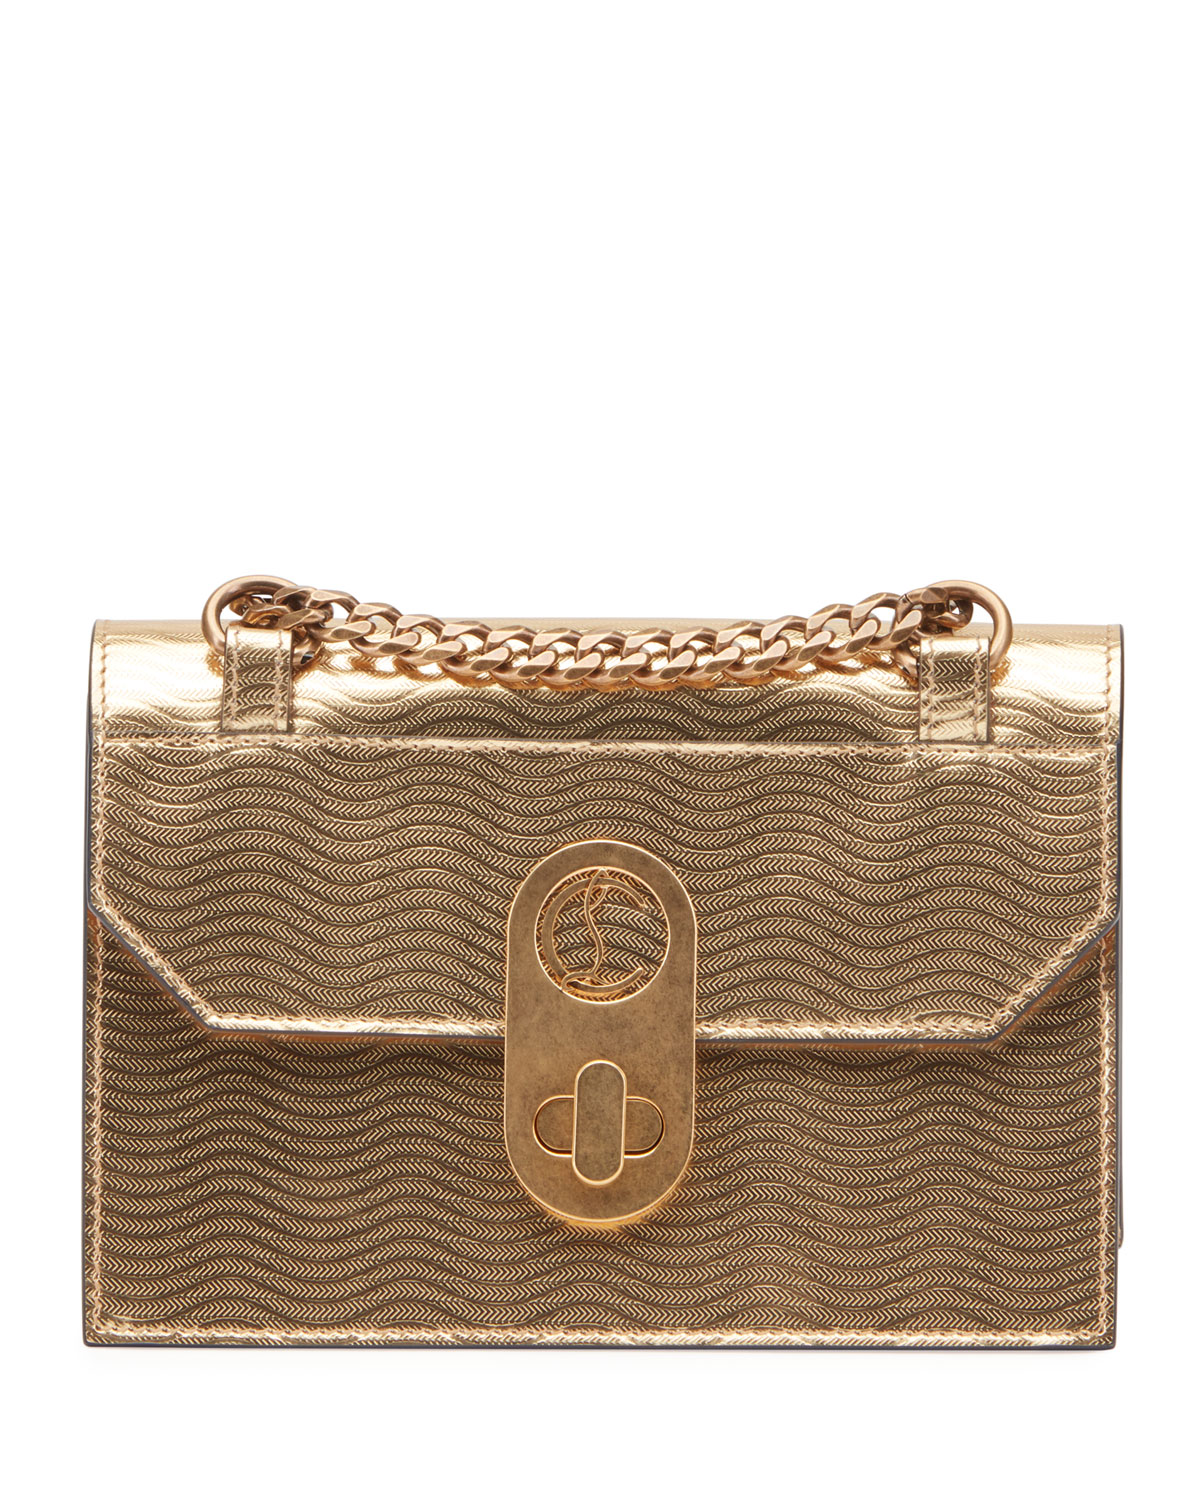 Christian Louboutin Shoulder ELISA MINI CALF GOURMETTE SHOULDER BAG